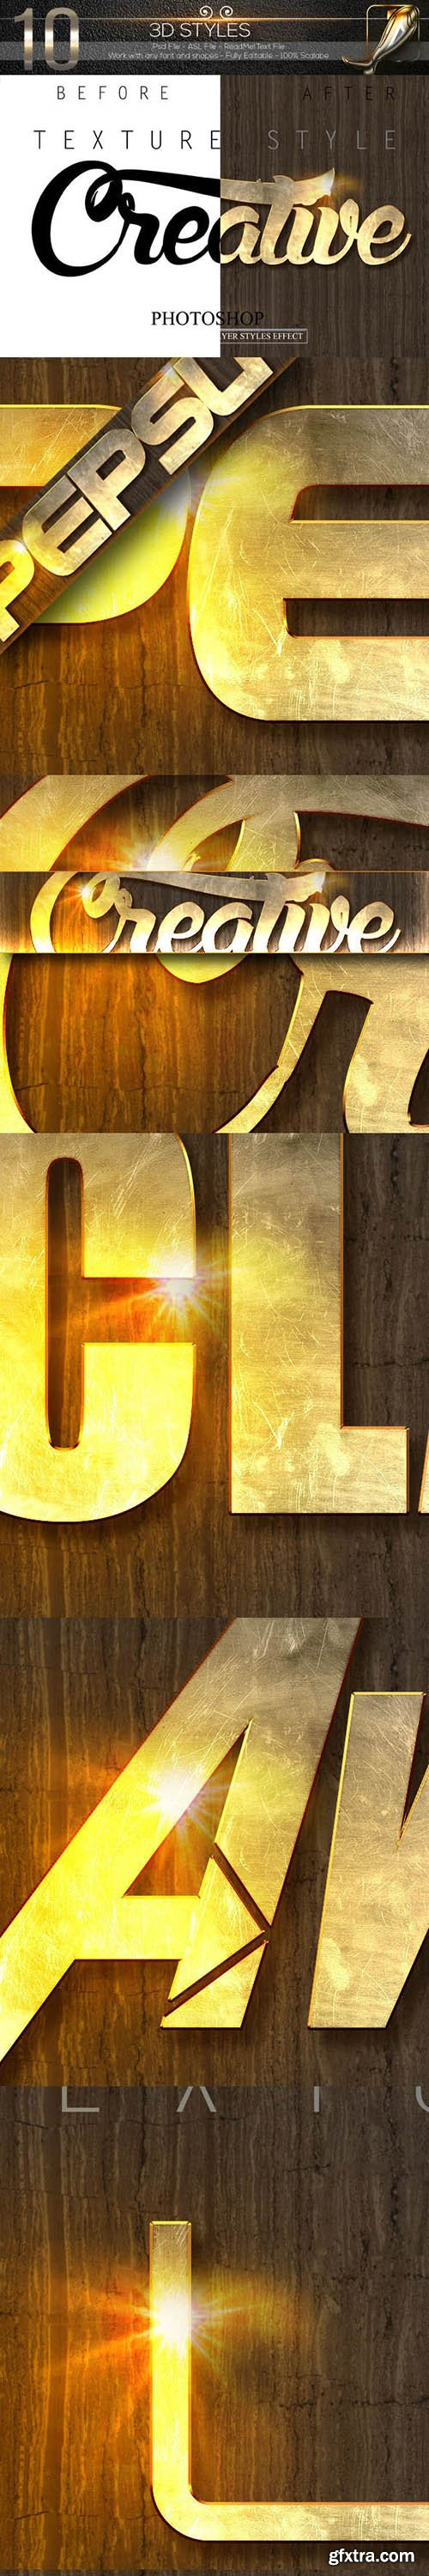 GraphicRiver - 3D Text Styles 2_8_20 27971517